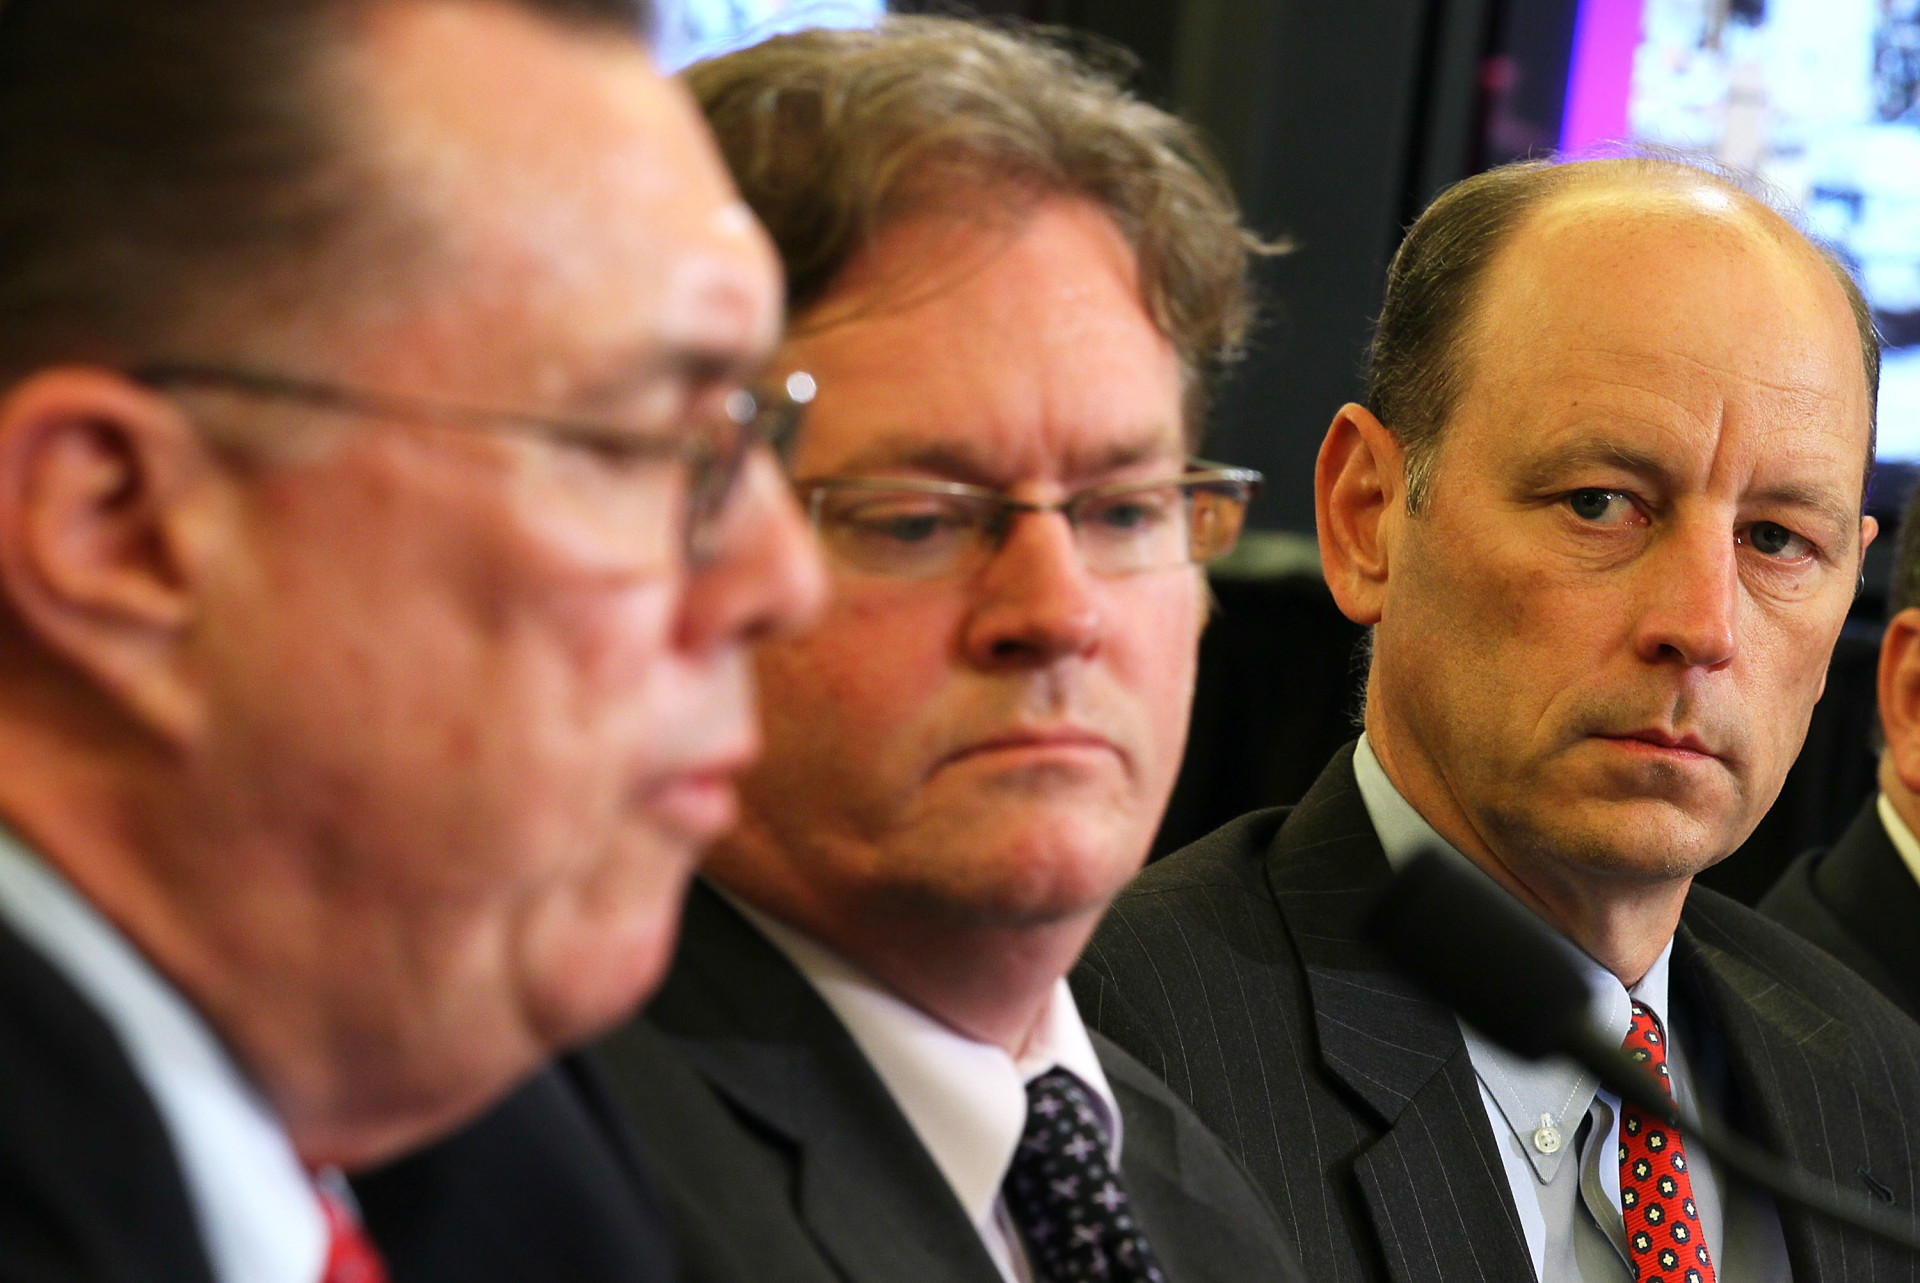 Former California Public Utilities Commission Executive Director Paul Clanon (center) sits between San Bruno Mayor Jim Ruane and PG&E President Chris Johns at a September 28, 2010 Senate committee hearing.